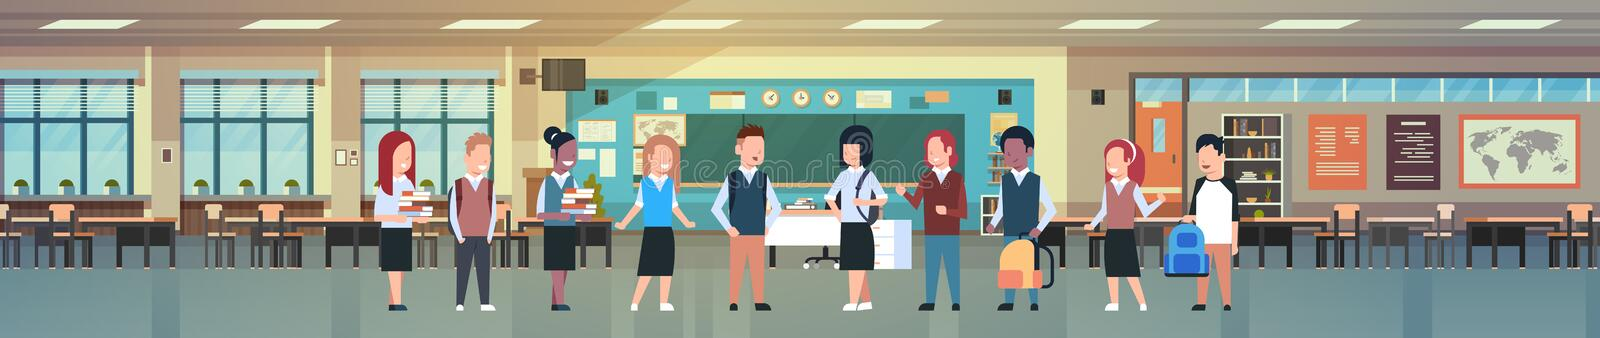 Mix Race Group Of School Children In Classroom Interior, Diverse Pupils In Modern Class Room Horizontal Banner royalty free illustration